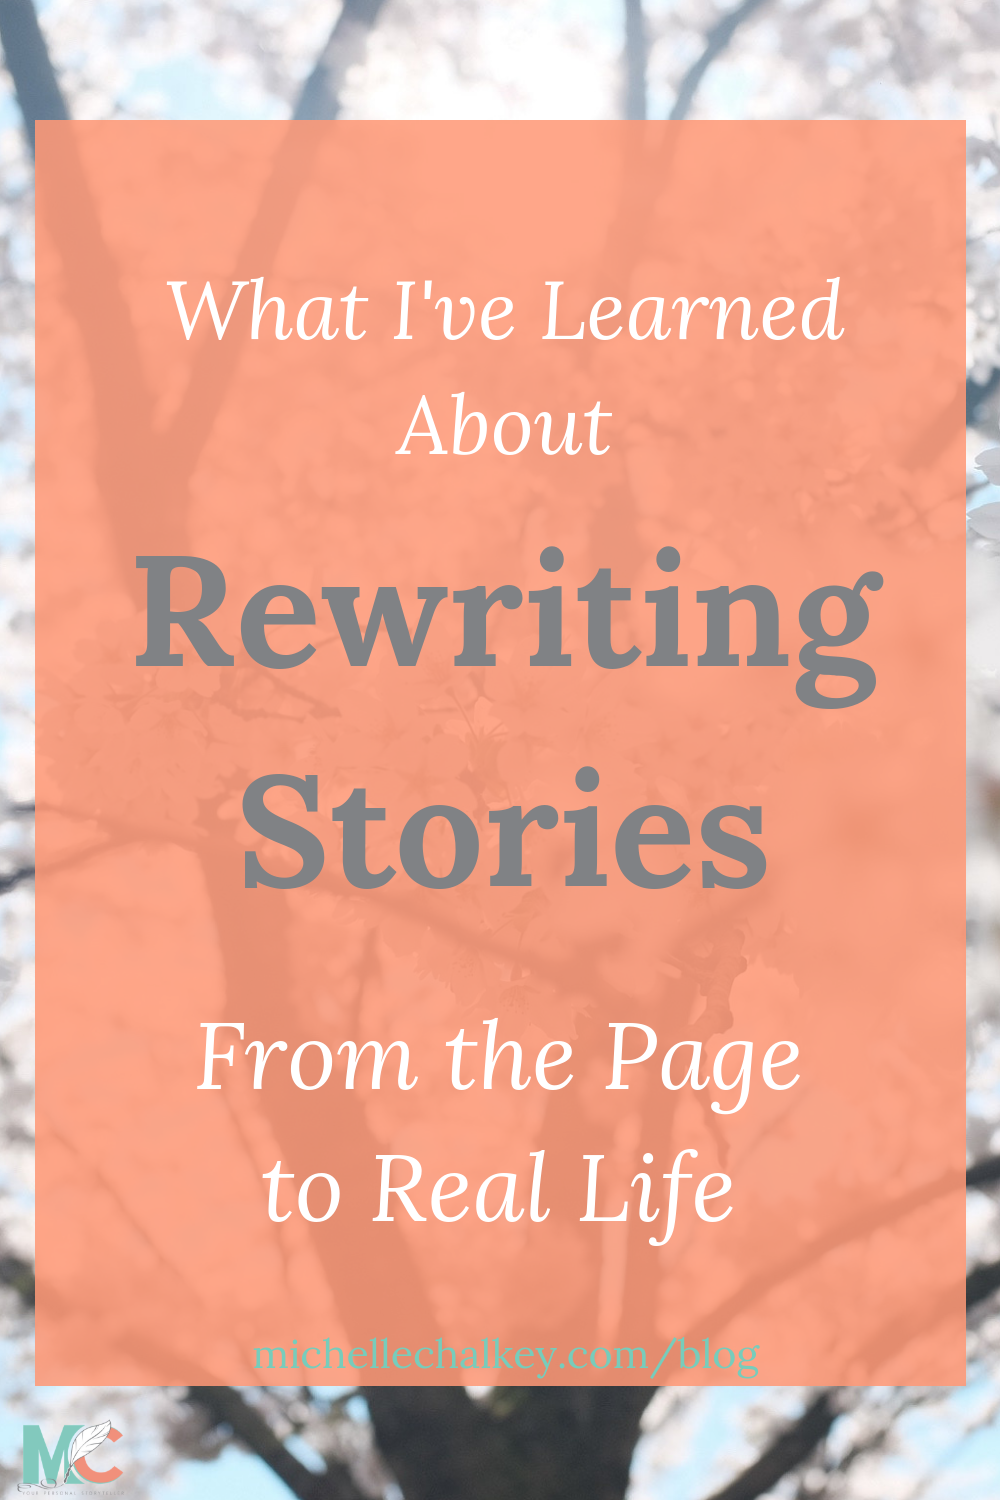 What stories do you tell yourself that maybe aren't true anymore? Here's what I've learned about rewriting stories, from essay drafts to leftover drafts from adolescence. #writing #stories #editing